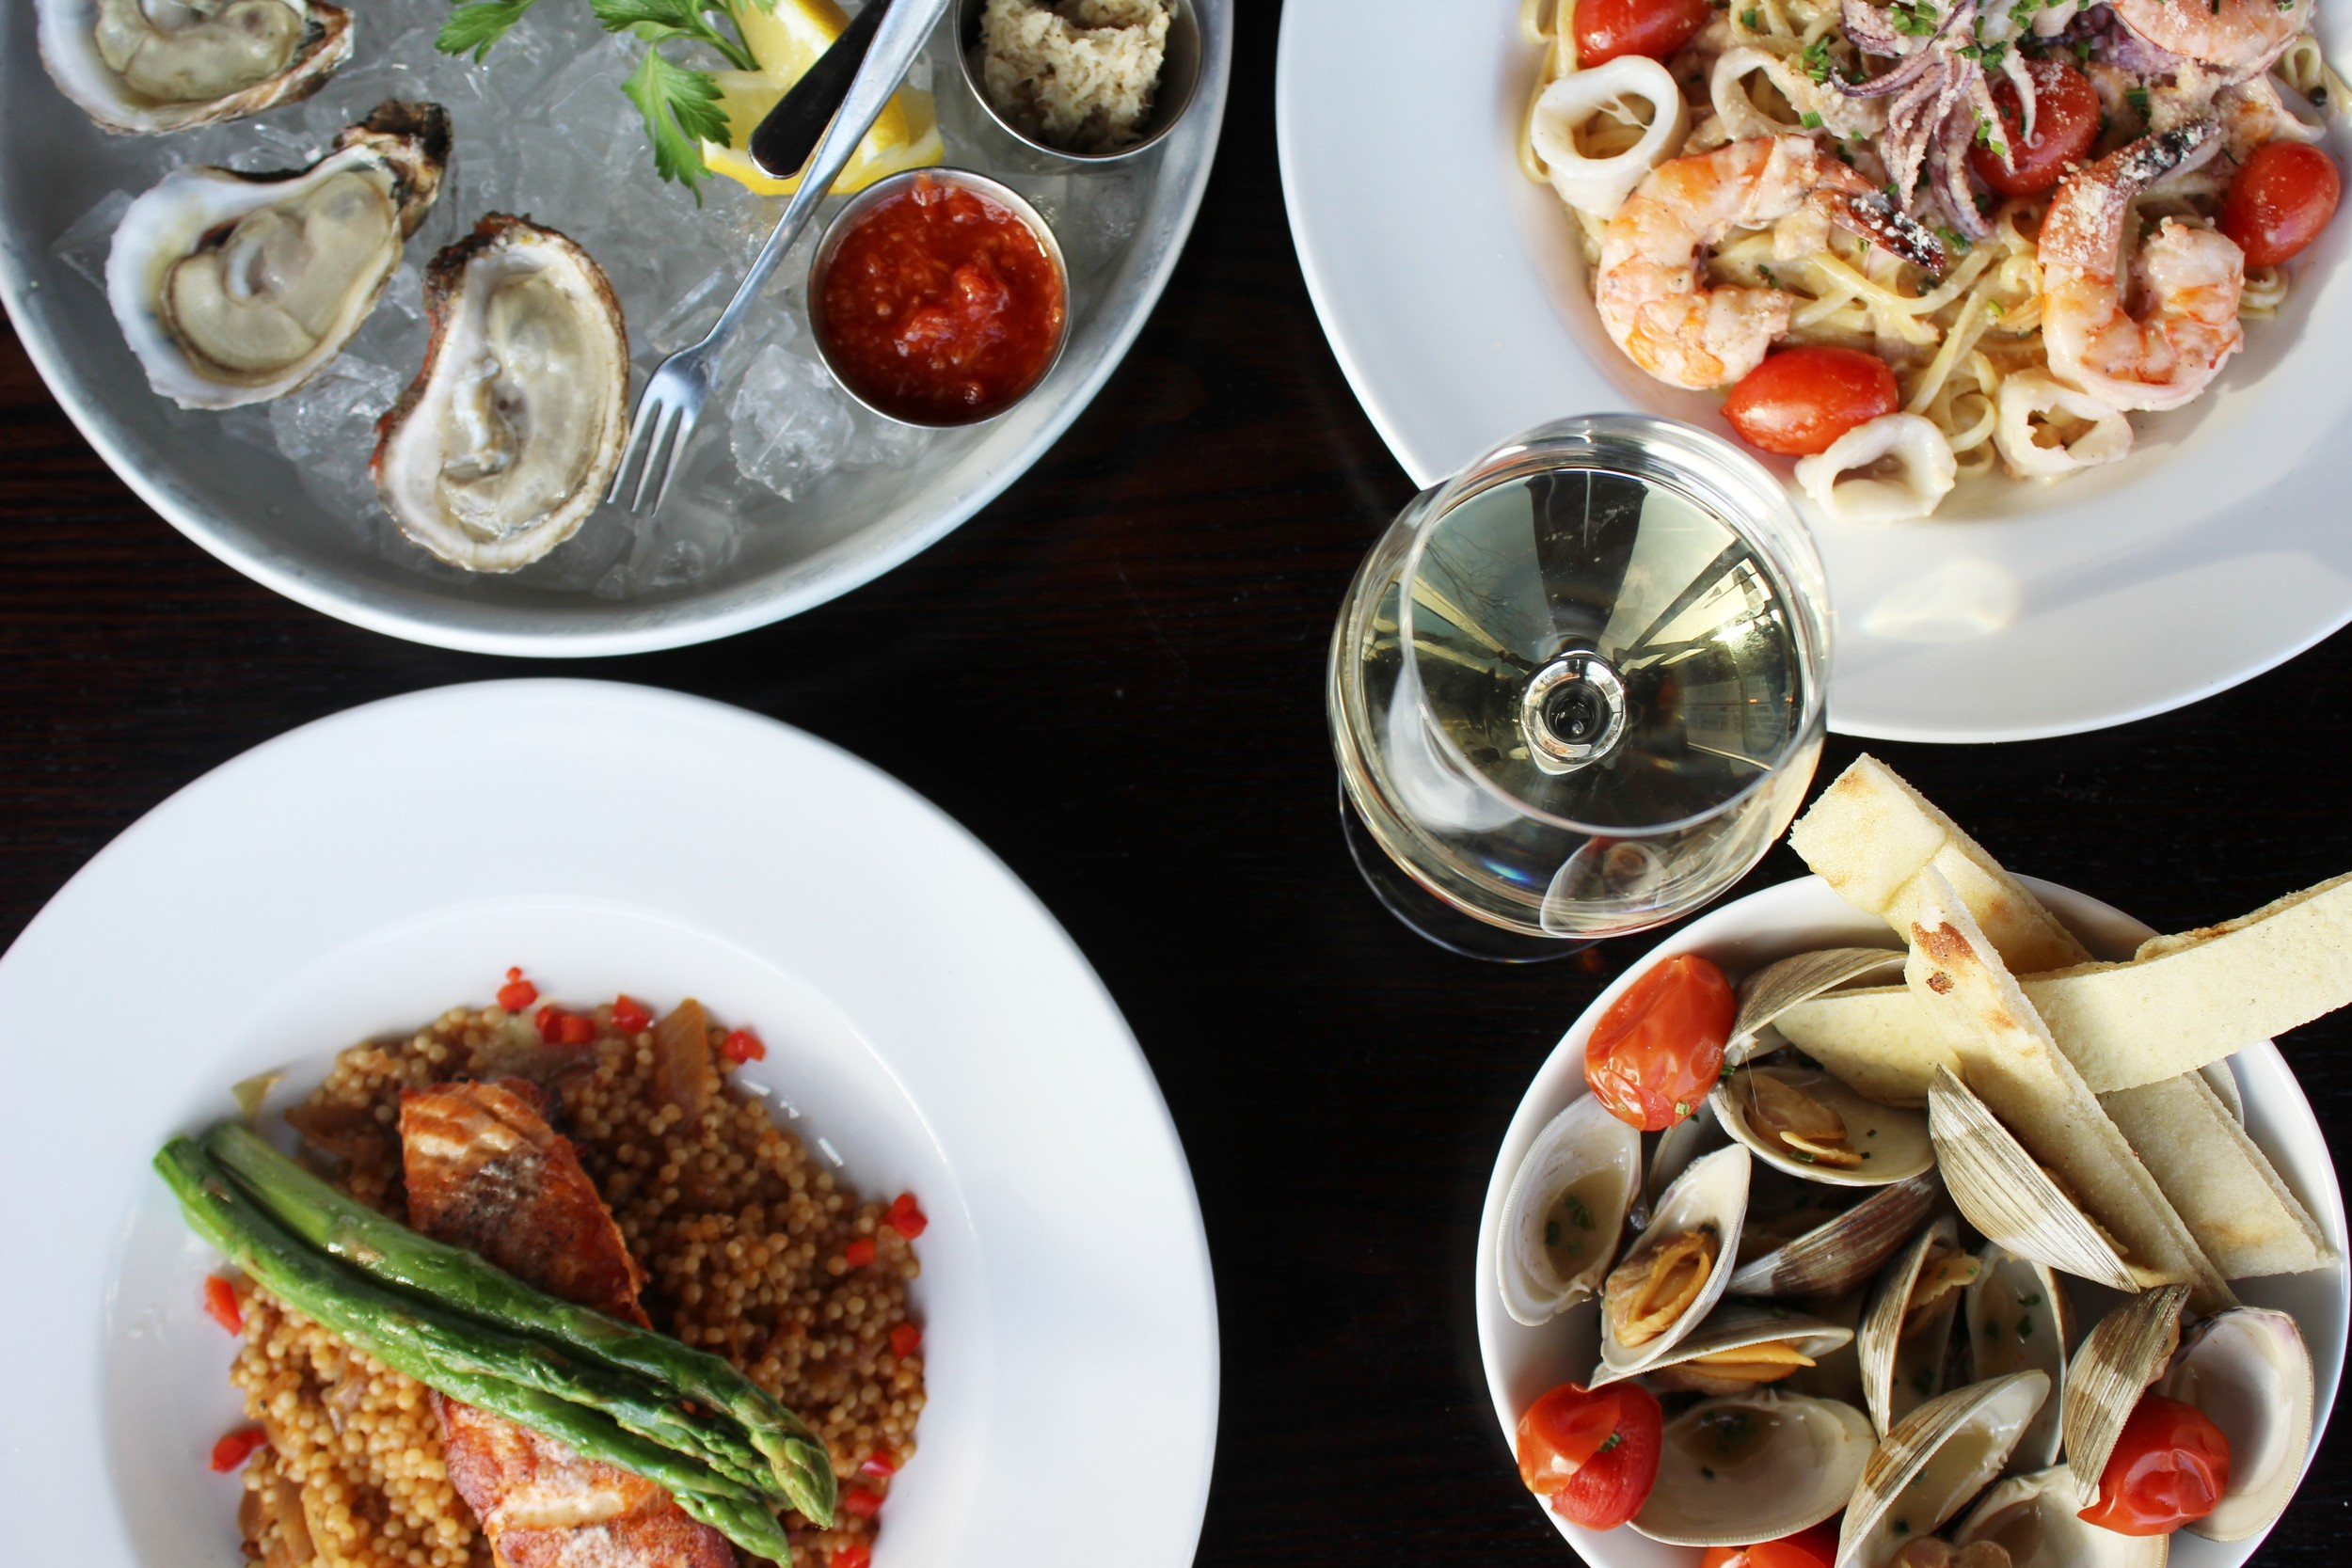 Stamford's Sign of the Whale embraces the Harbor Point waterfront area with a new seafood inspired menu